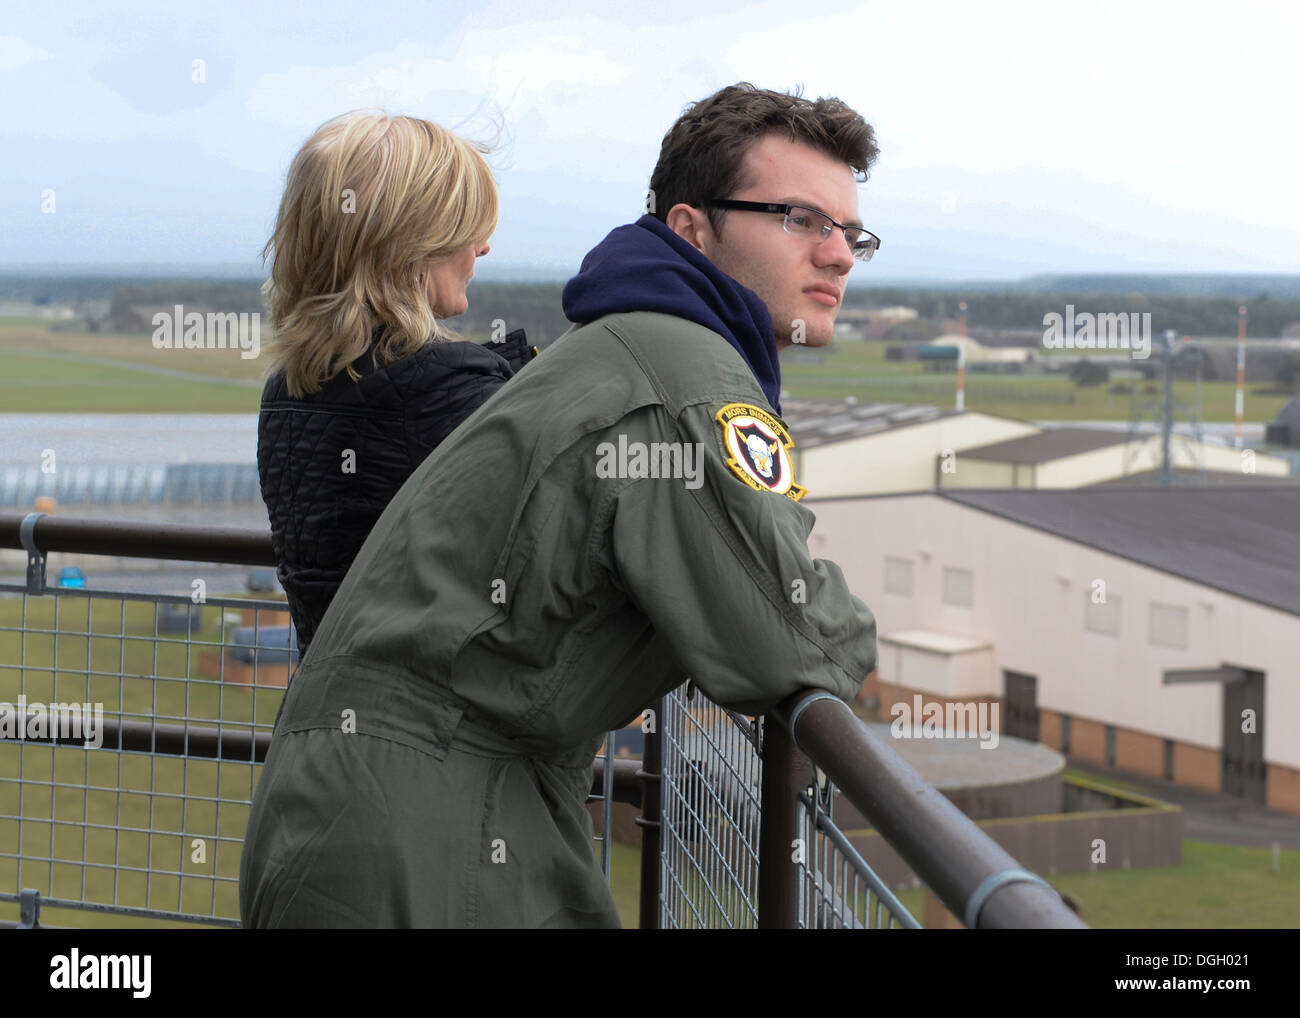 Pilot for a Day participant Stephen Sutton and his mother, Jane Sutton, view the base from the air traffic control tower on Royal Air Force Lakenheath, England, Oct. 10, 2013. Pilot for a Day, started in 2012, gives local children with serious illnesses a - Stock Image